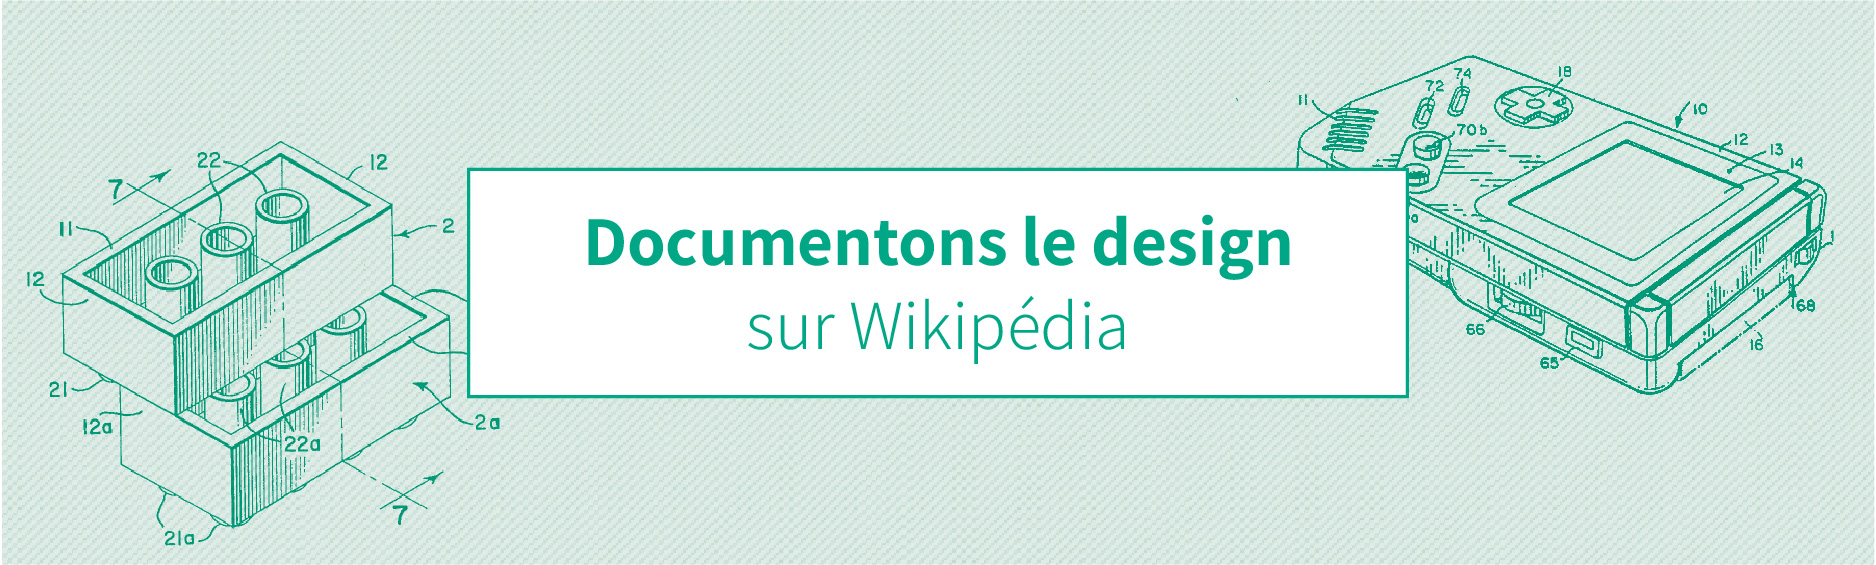 Documentons le design paysage.jpg